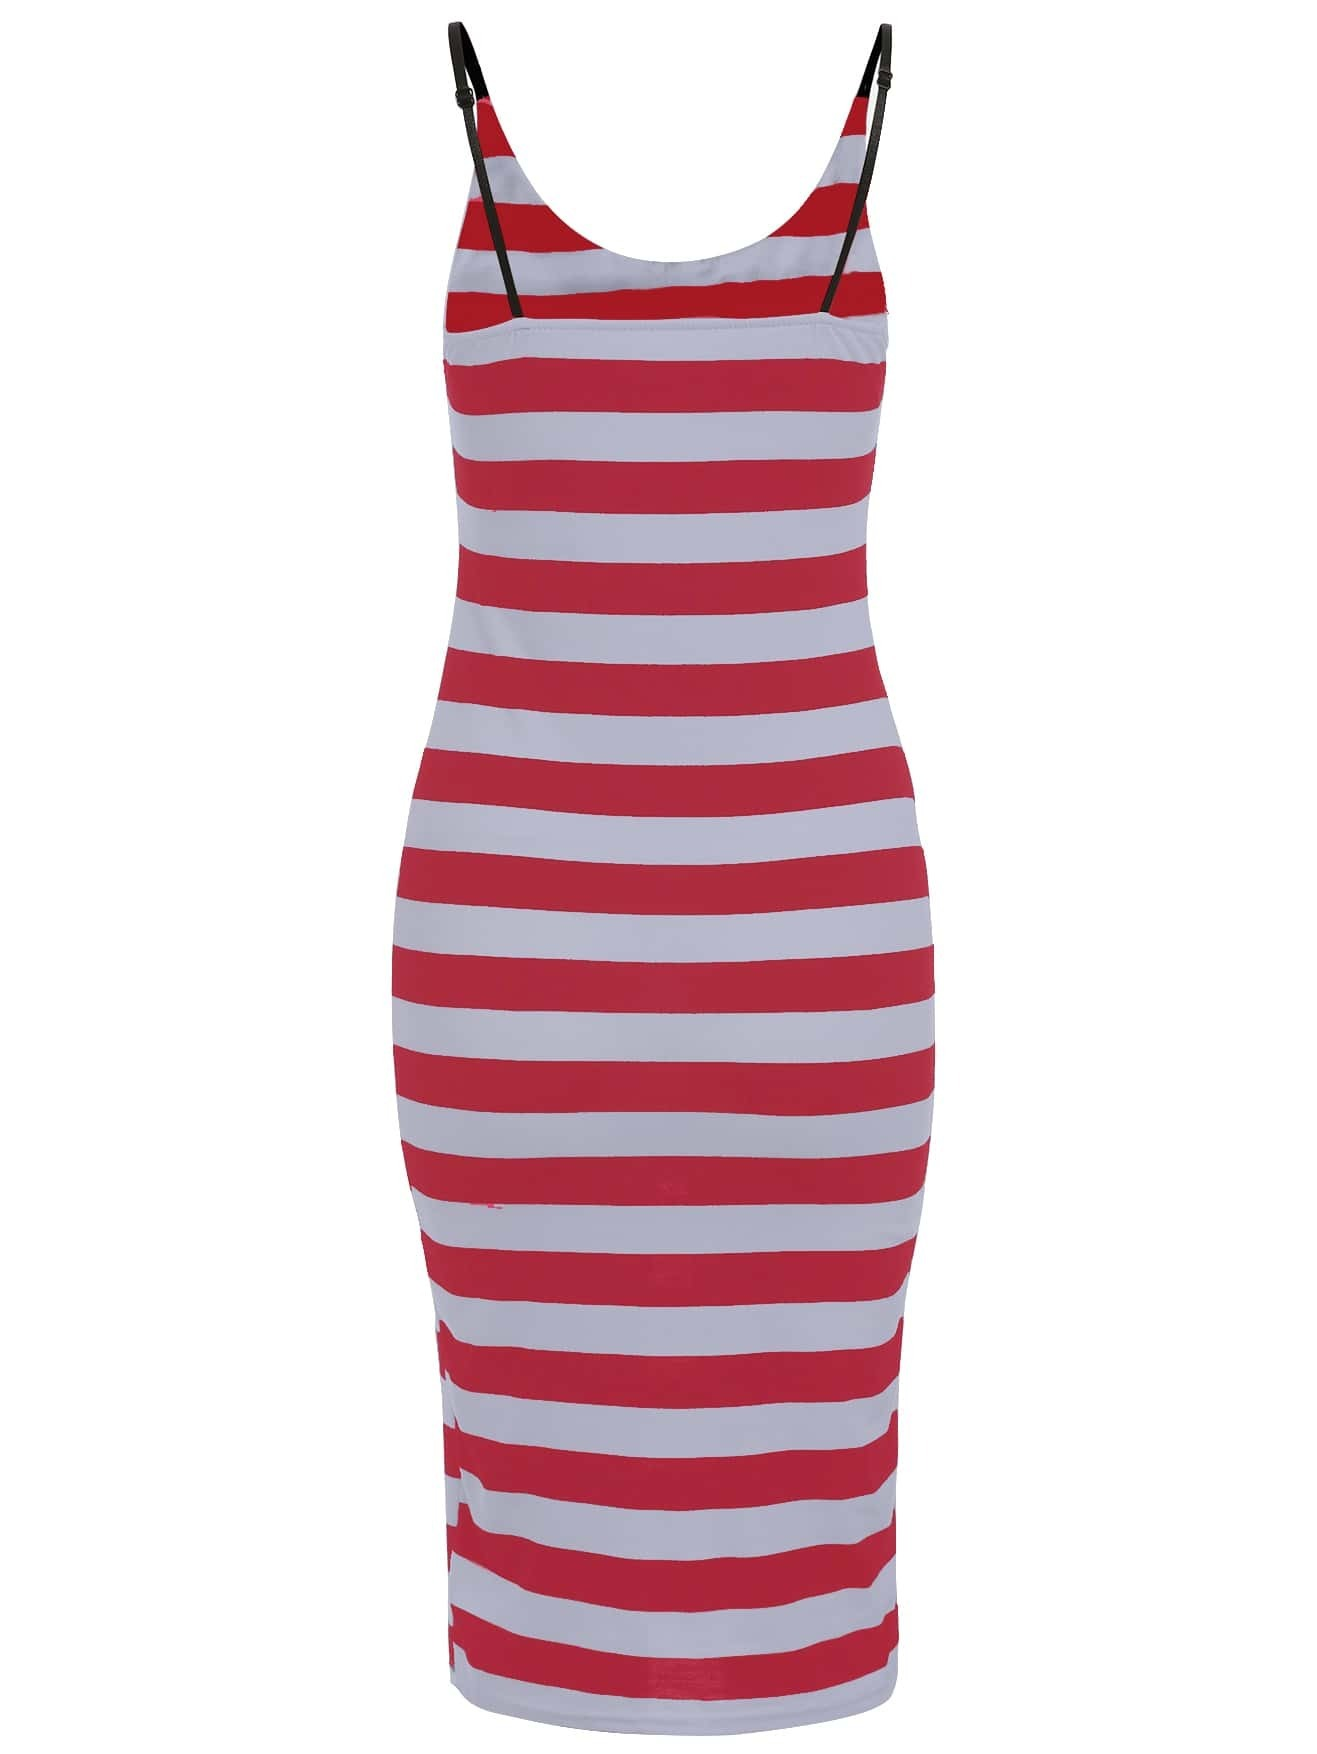 Robe longue rayures paules nues rouge french romwe for Interieur paupiere inferieure rouge